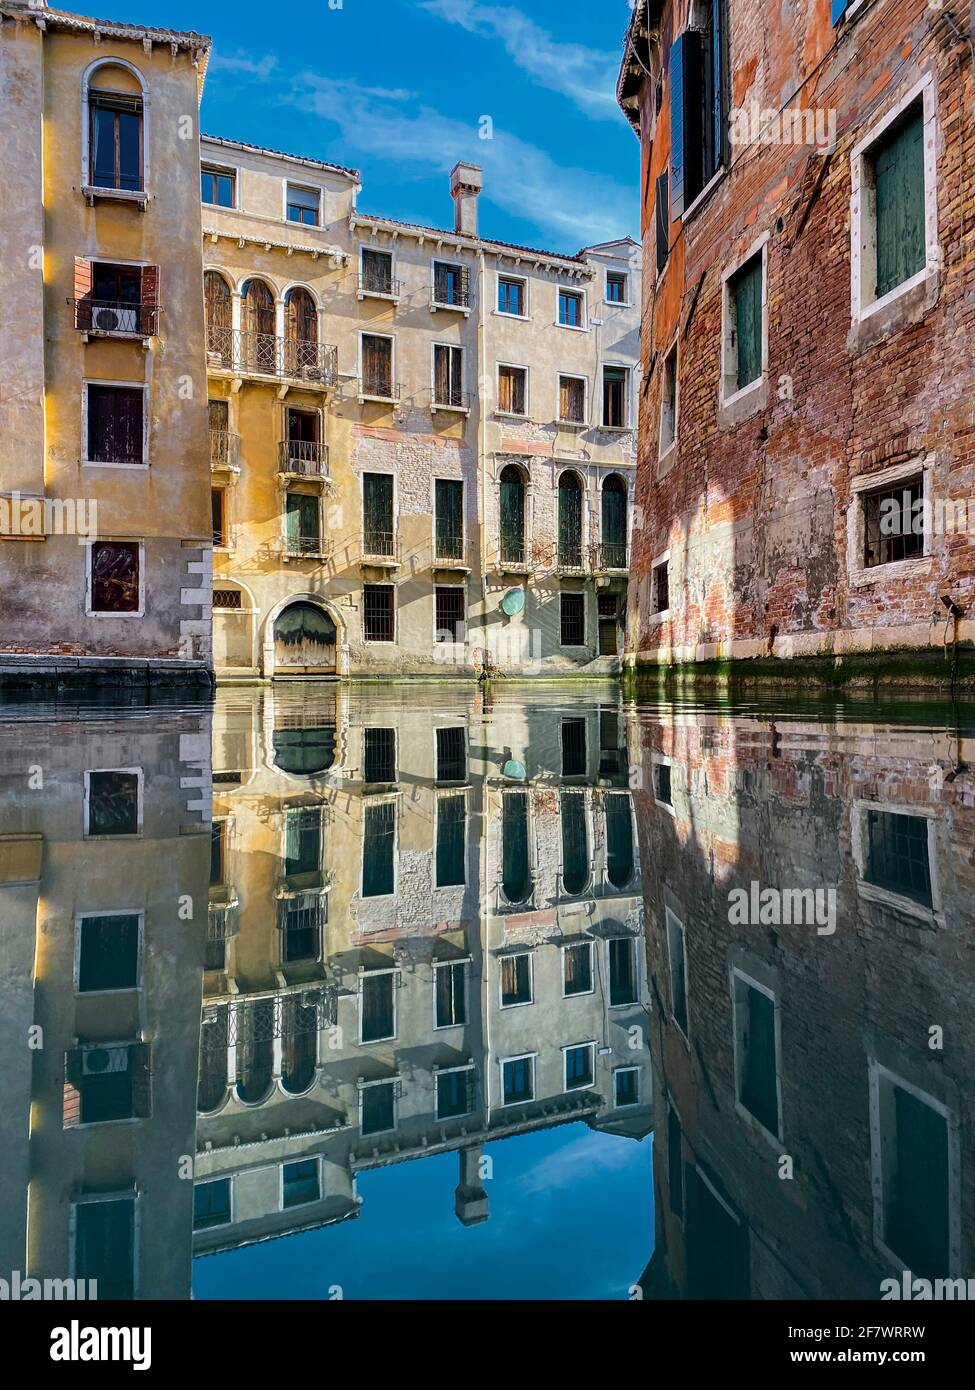 colorful water reflections in the empty canal without boats Stock Photo